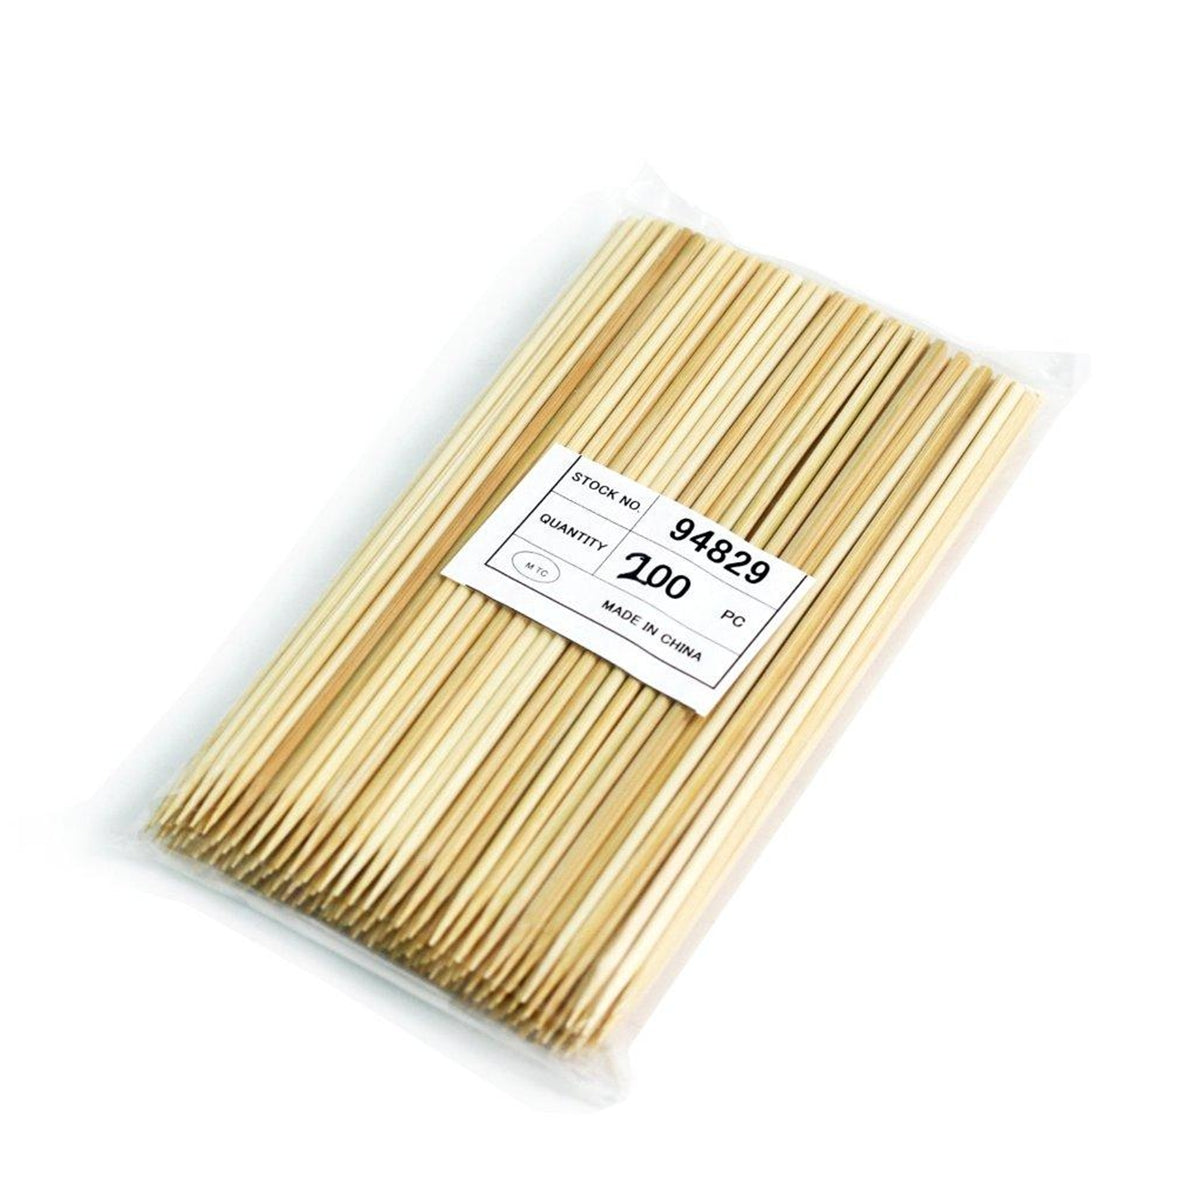 Bamboo Skewers (200/pack)